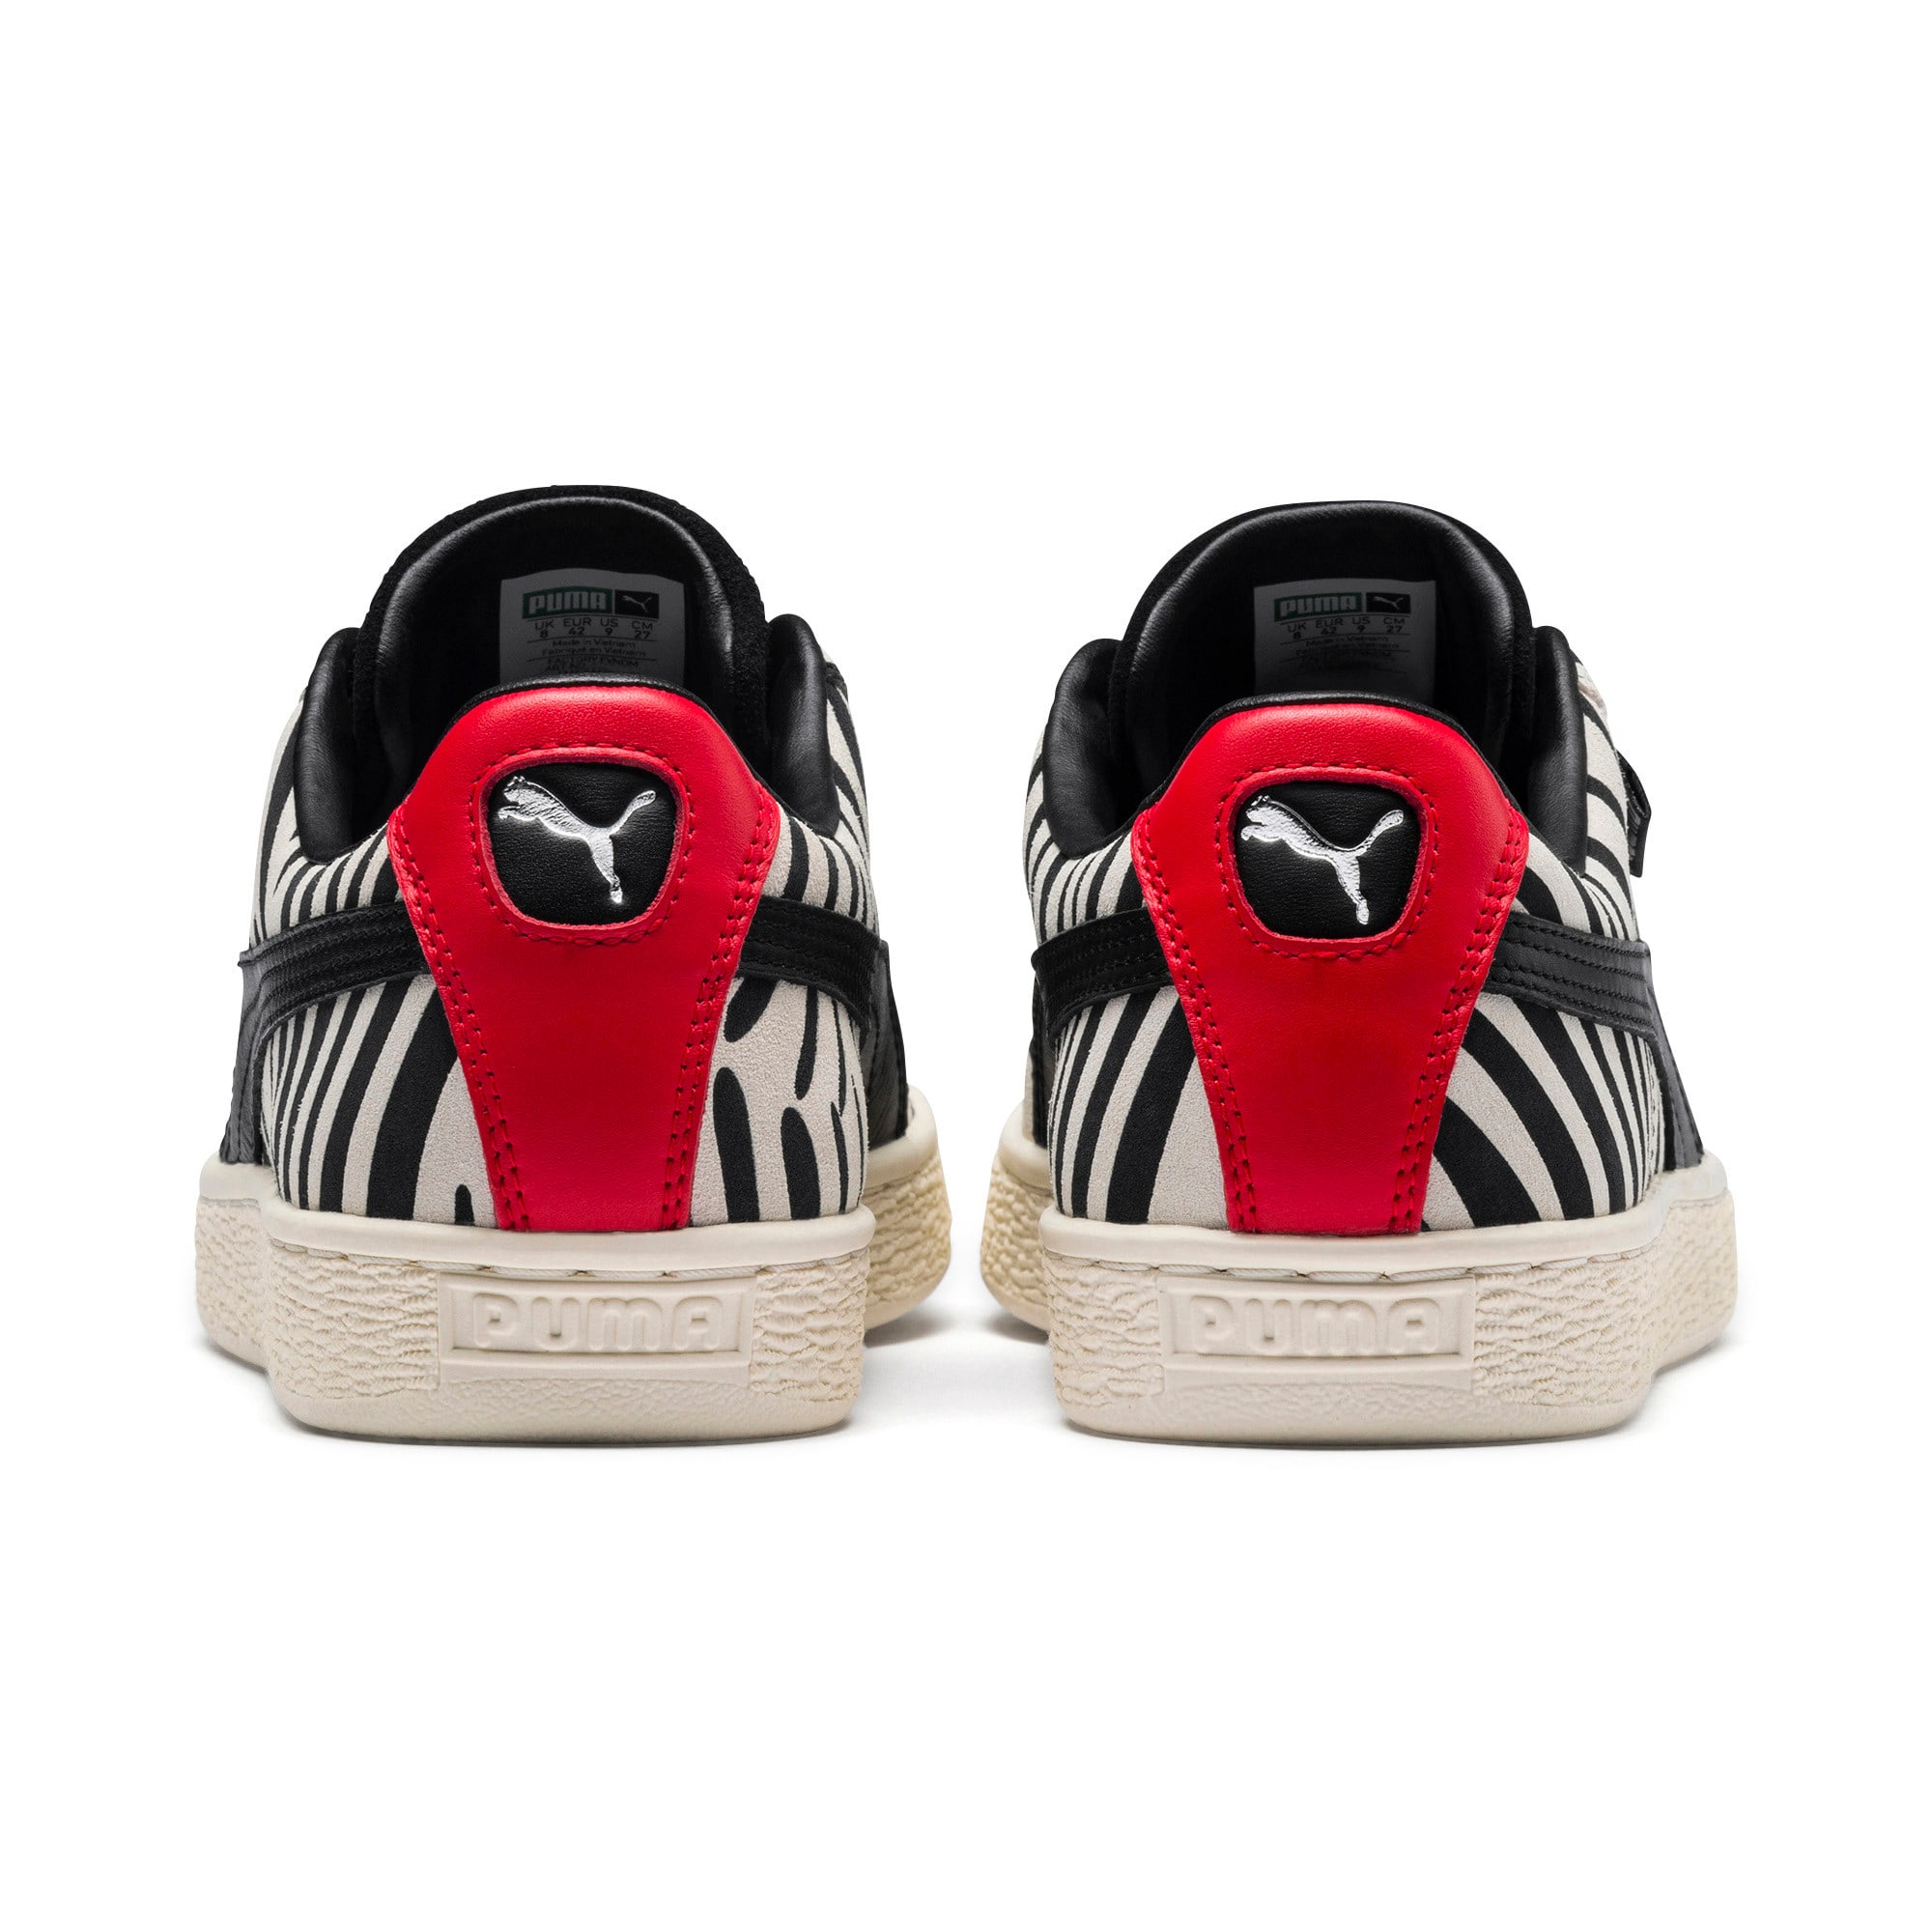 Thumbnail 4 of PUMA x Paul Stanley Suede Men's Sneakers, Puma White-Puma Black, medium